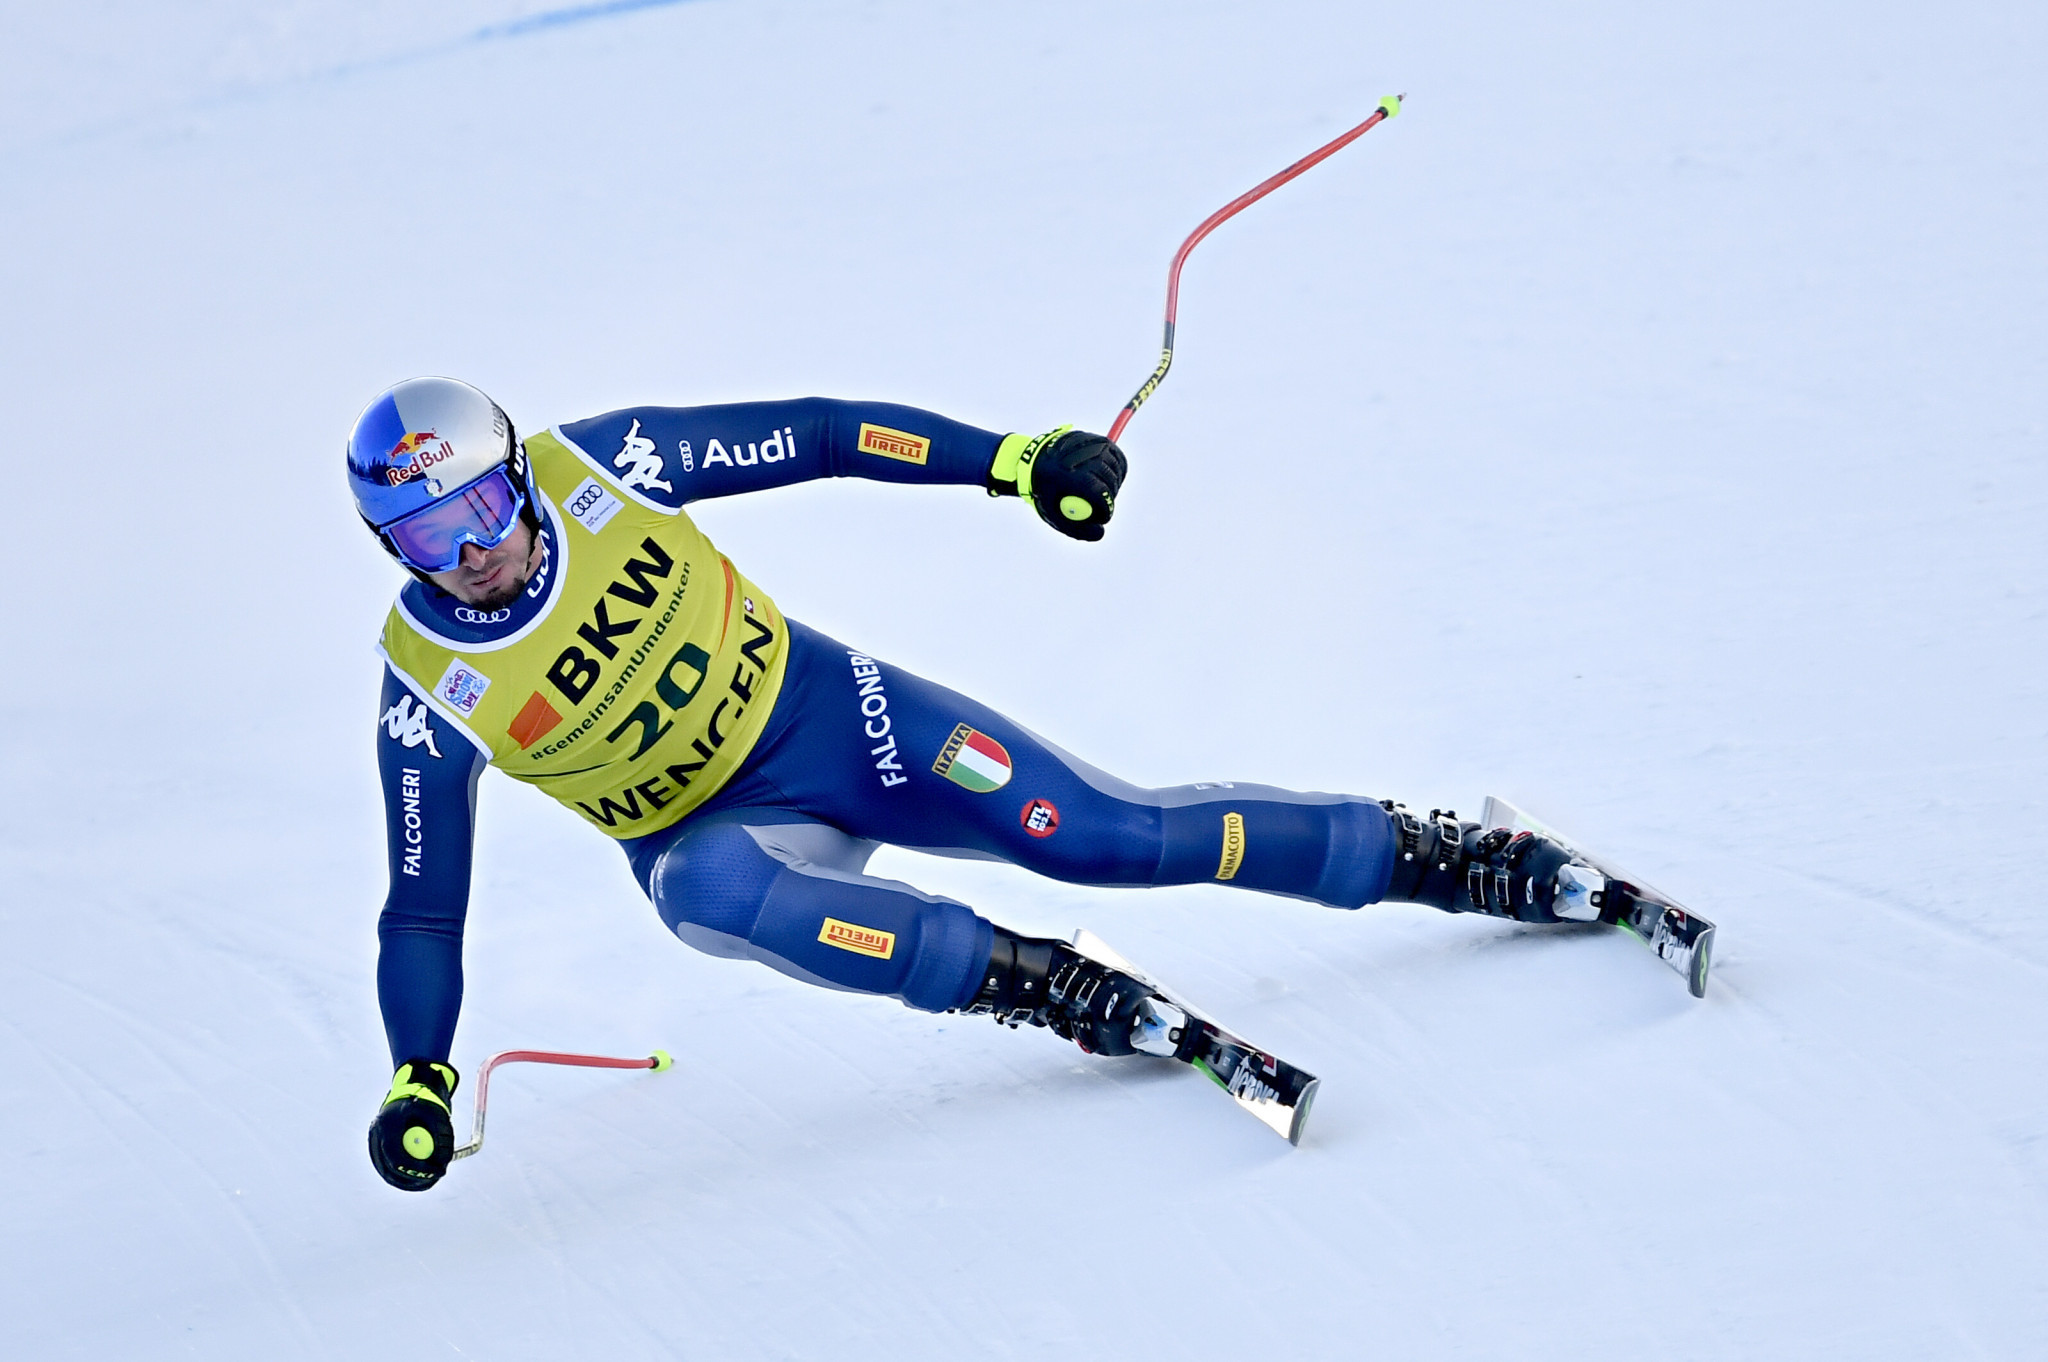 Dominik Paris of Italy will be looking to defend his super-G title at the 2021 FIS Alpine World Ski Championships in his home country ©Getty Images